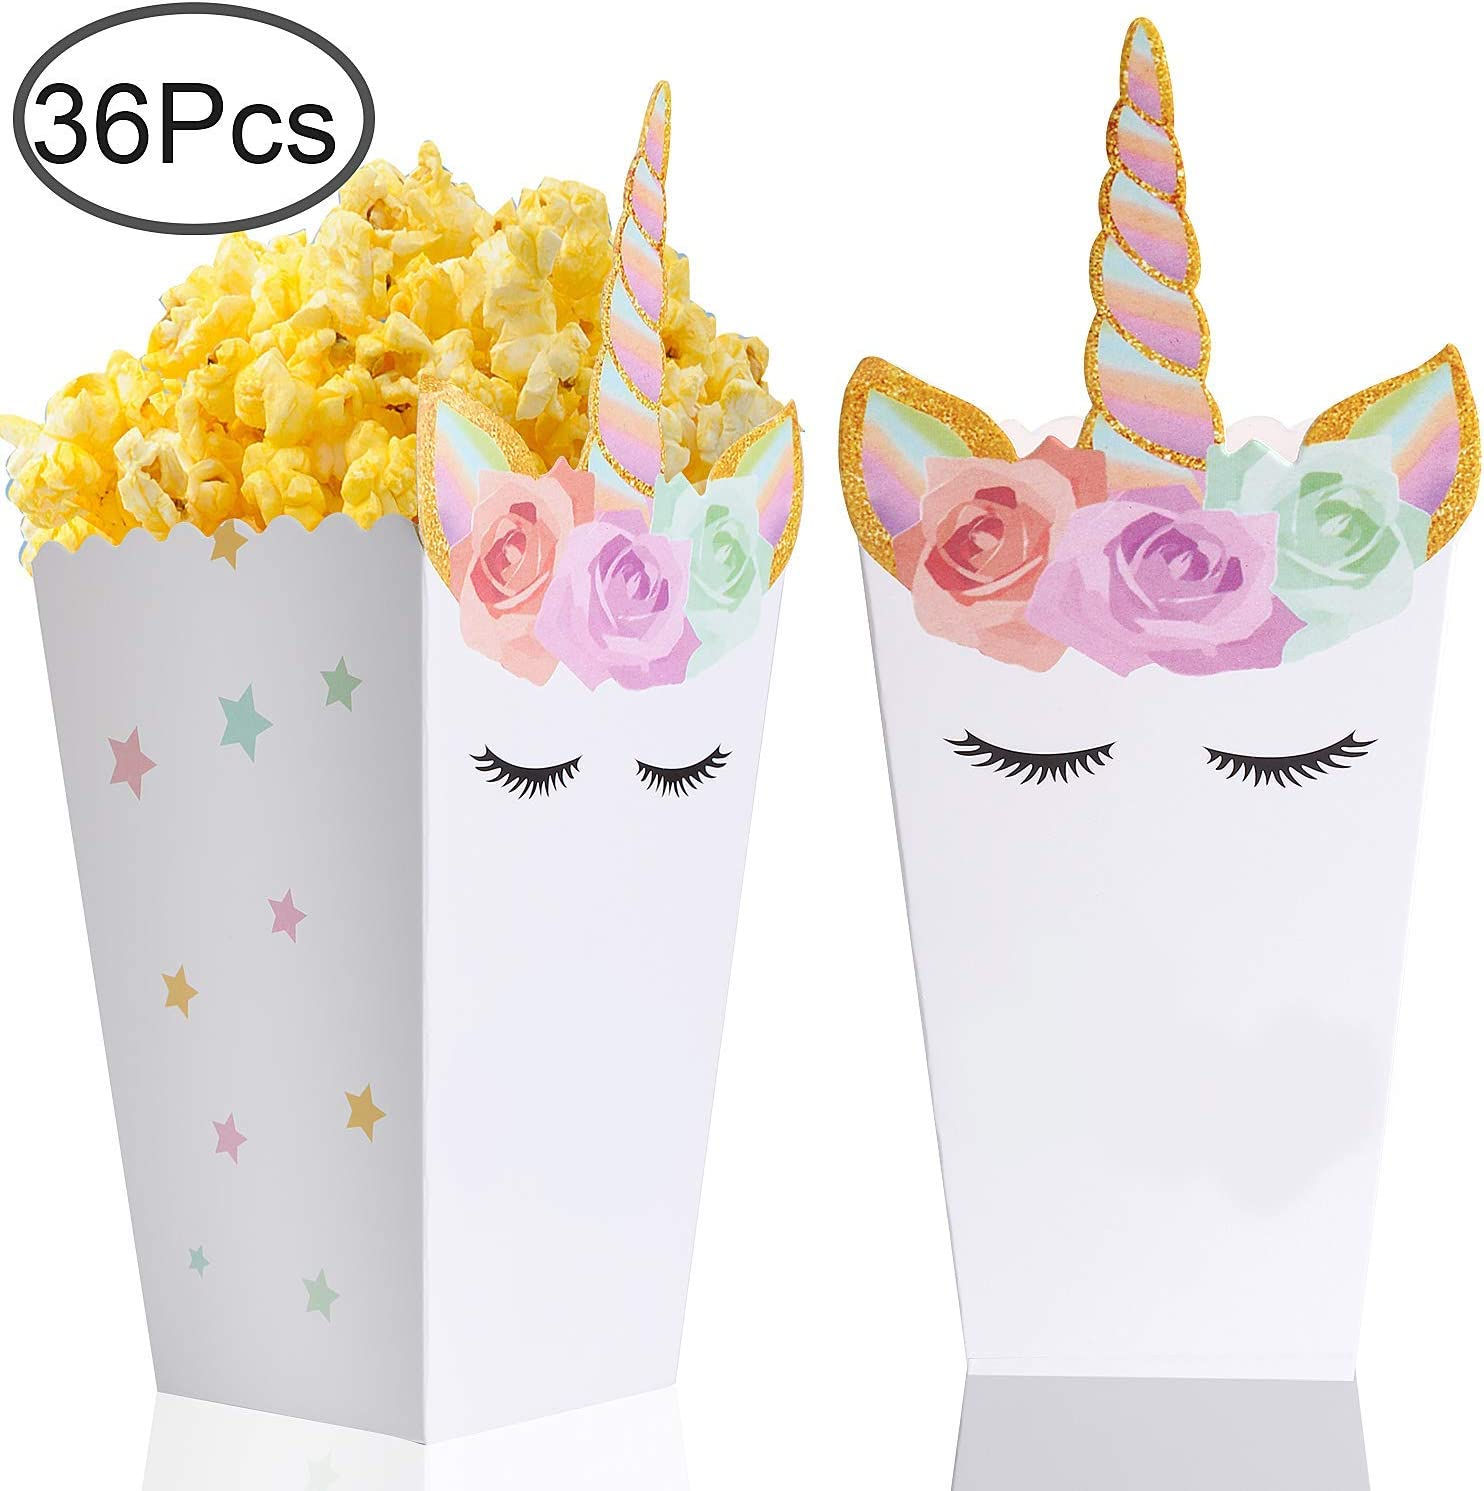 Unicorn Party Popcorn Boxes for 30 Guests and Up